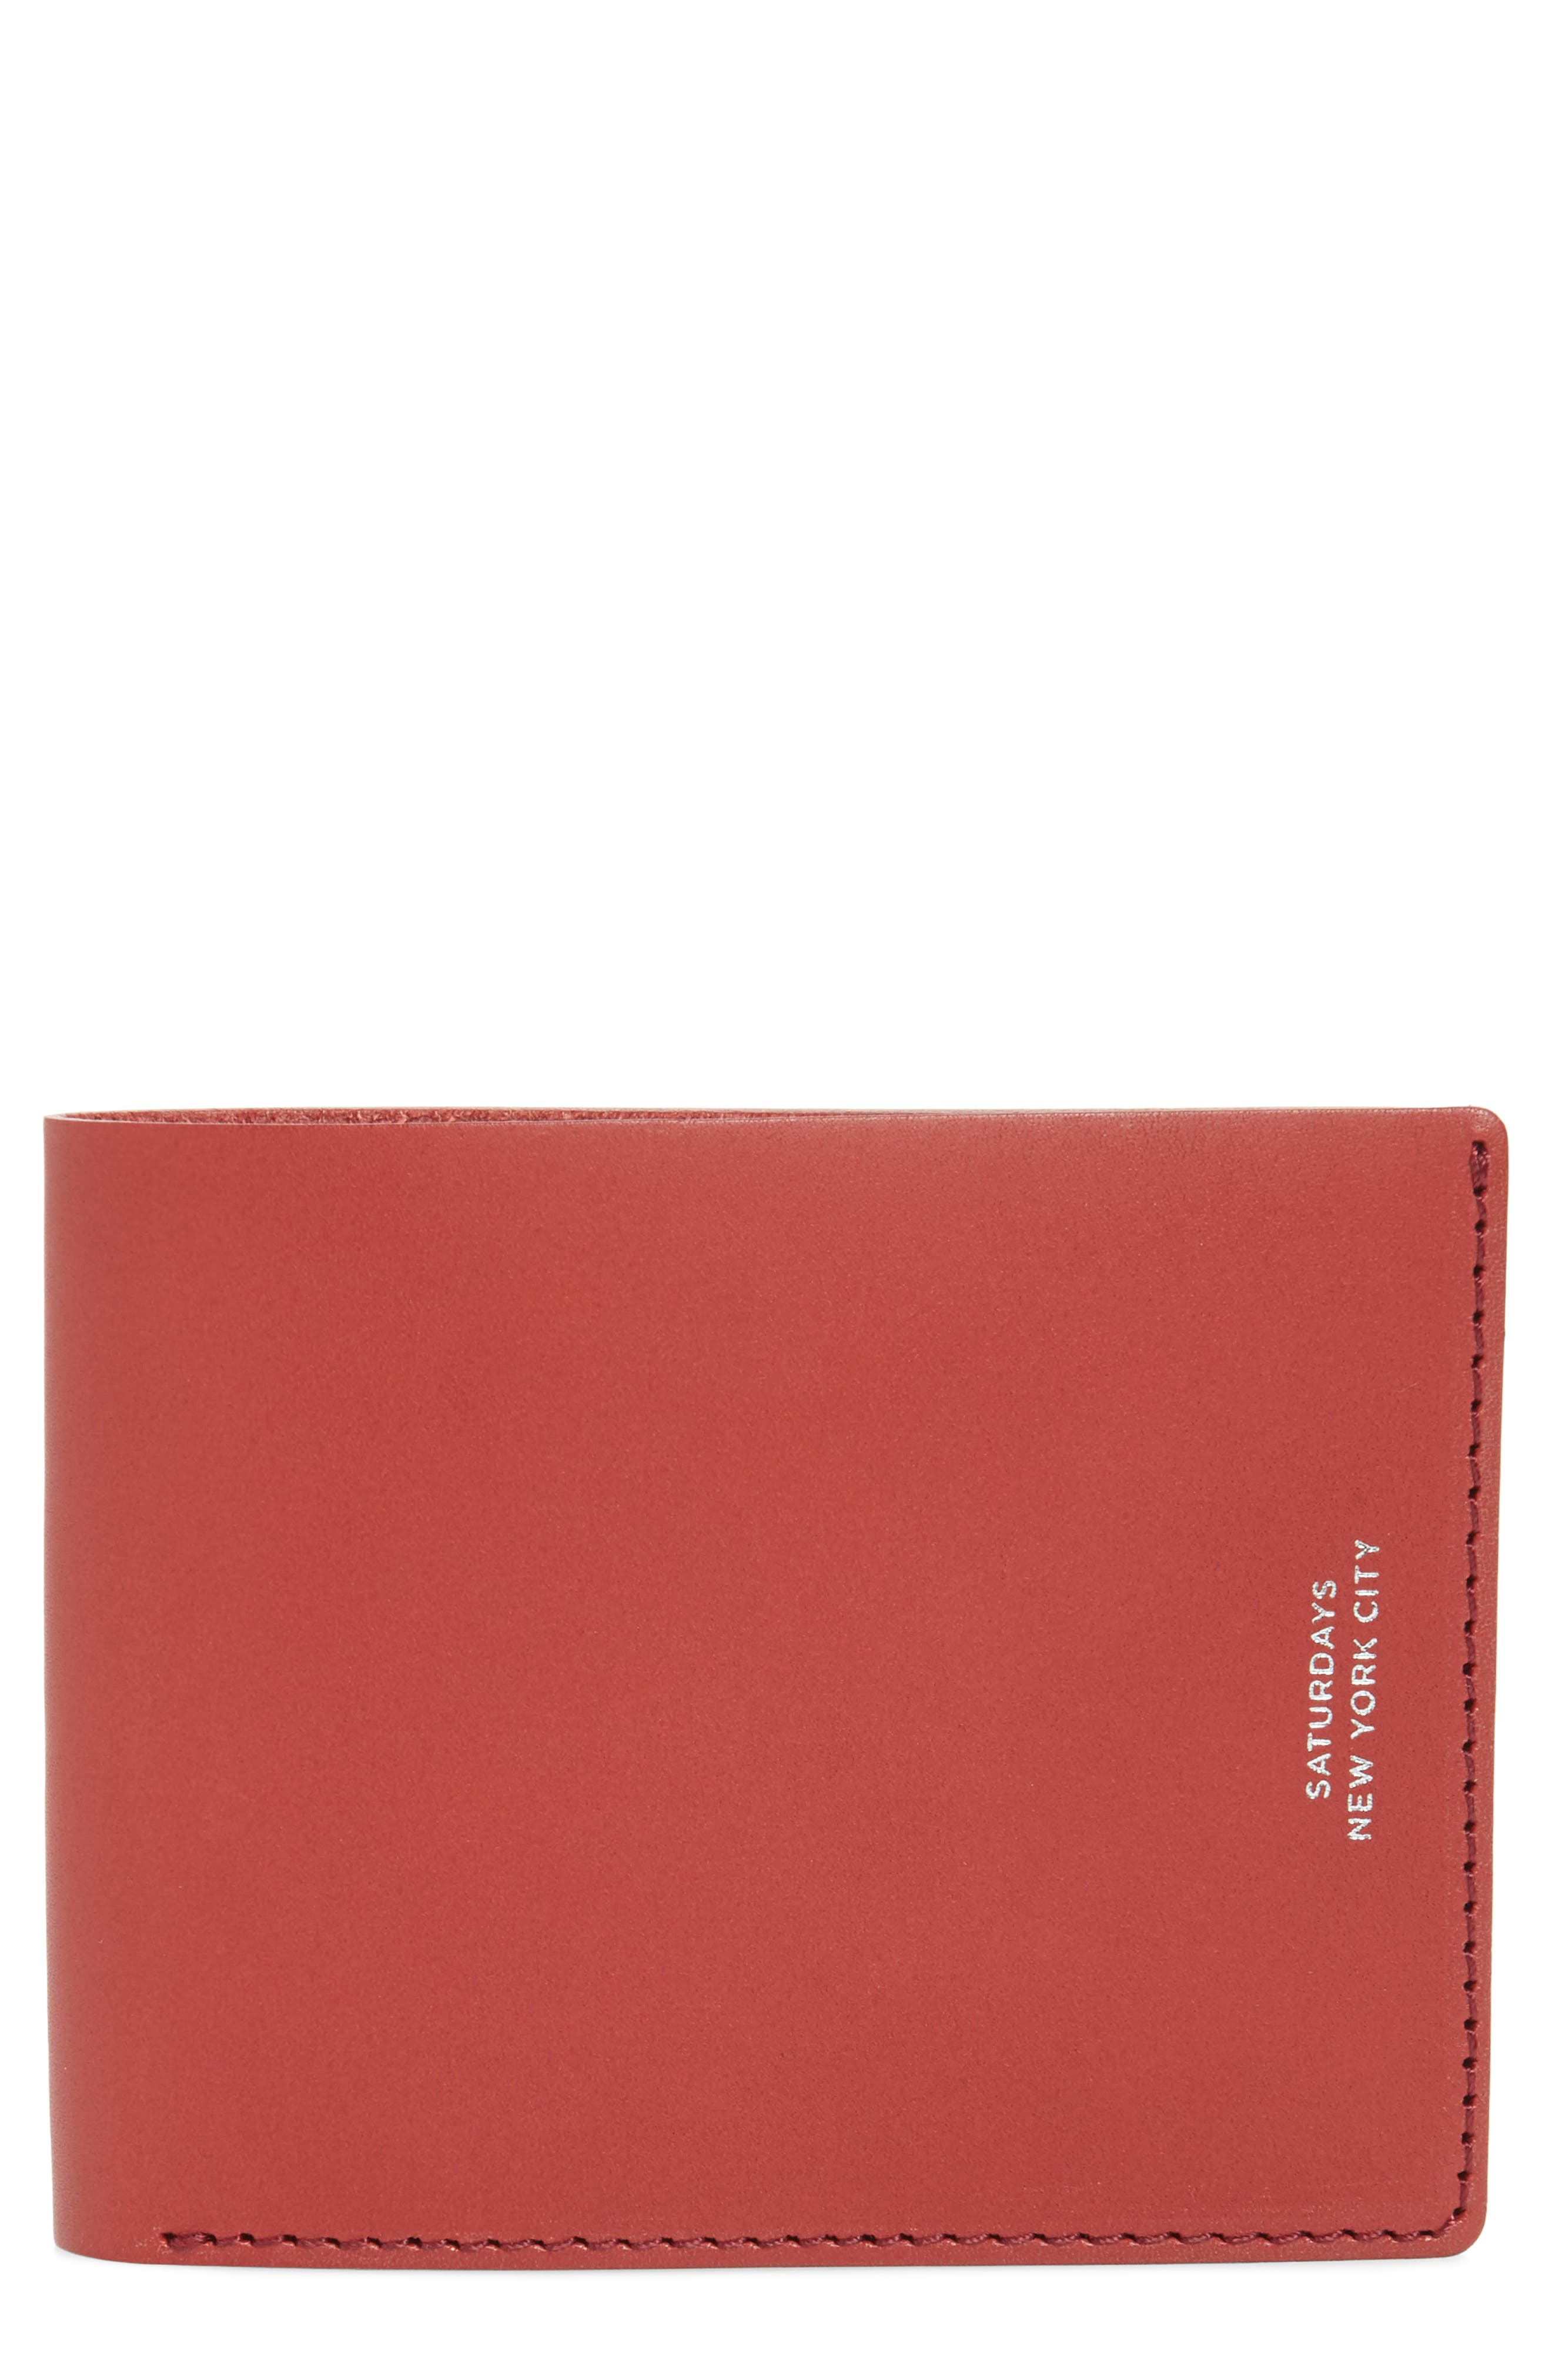 SATURDAYS NYC, Bifold Leather Wallet, Main thumbnail 1, color, TRUE RED